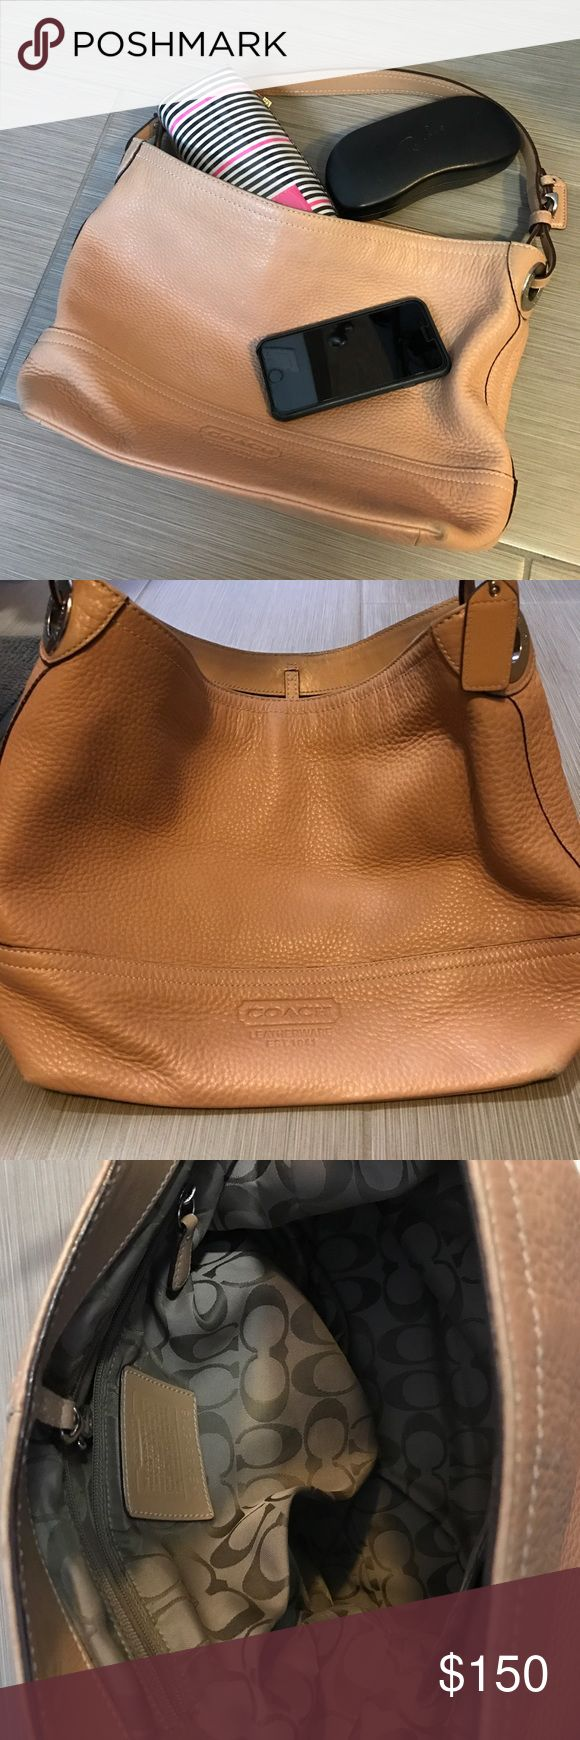 designer for discount coach bags outlet store by25  Coach leather purse  Authentic Coach leather purse in a beautiful tan  color Inner pockets